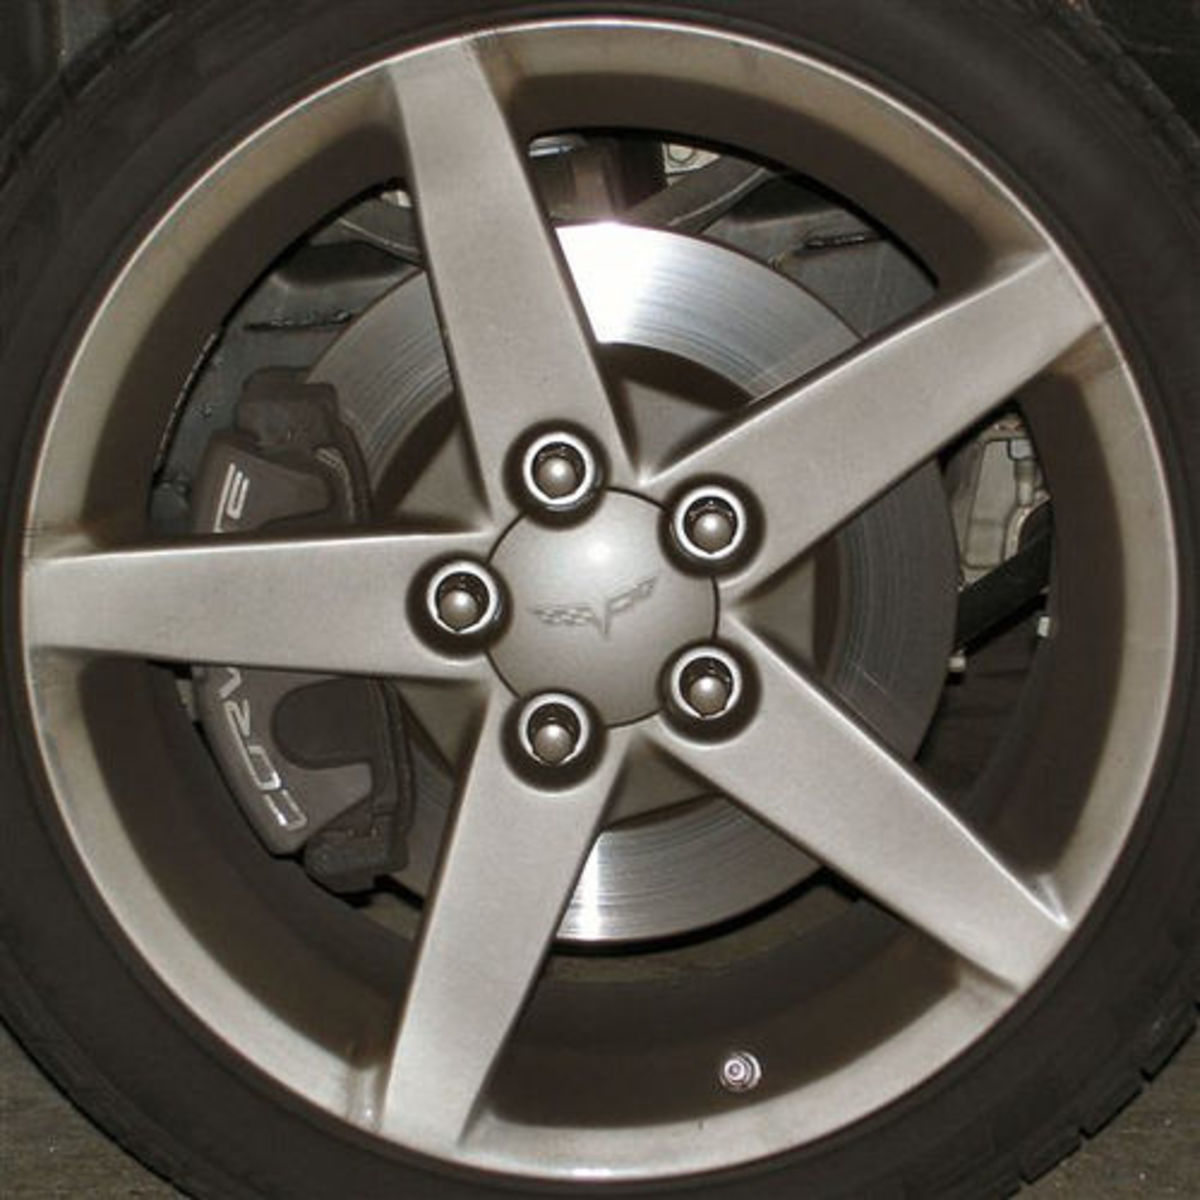 Squared Circle - Car Tire Rim-3 (Photo courtesy by thomwatson from Flickr)